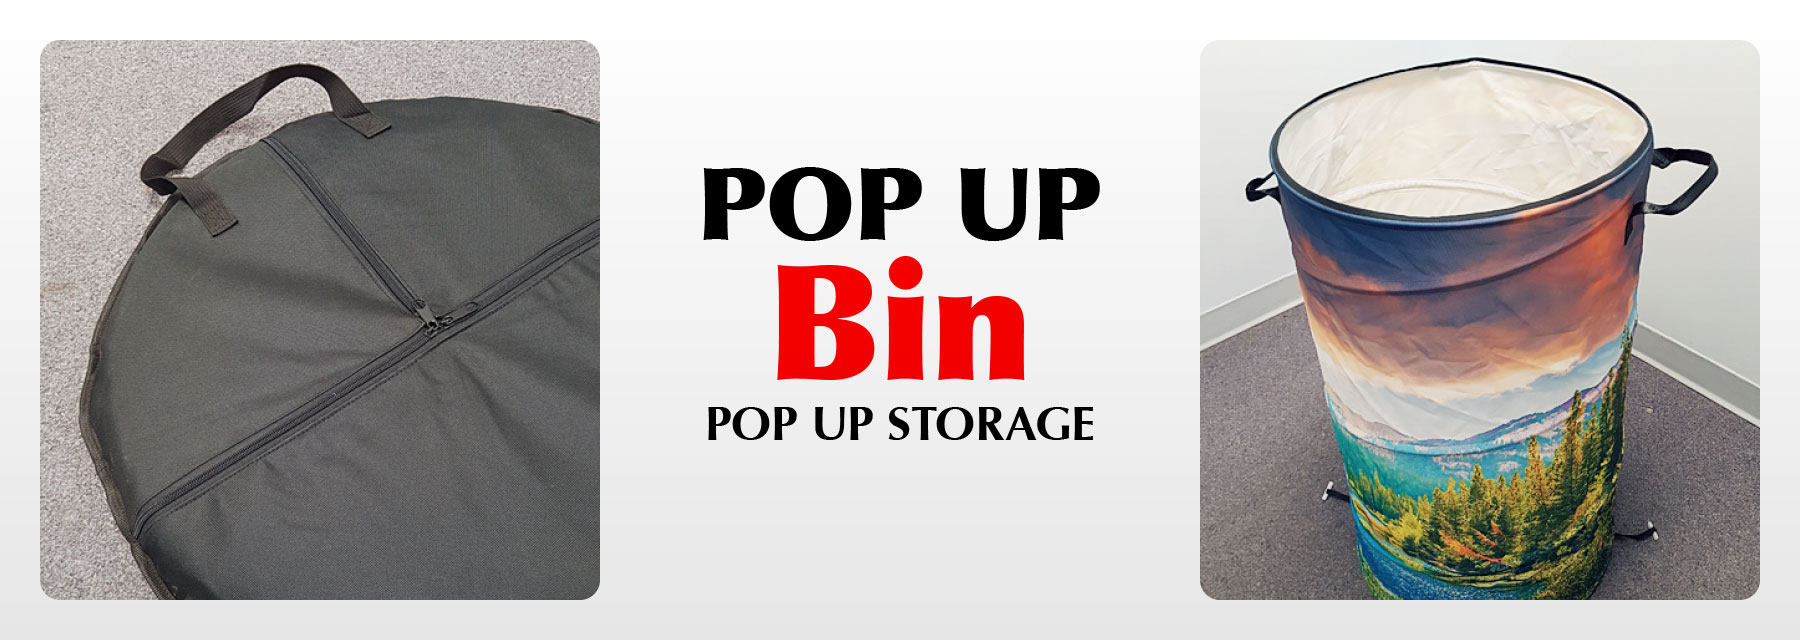 Pop up bin for storage